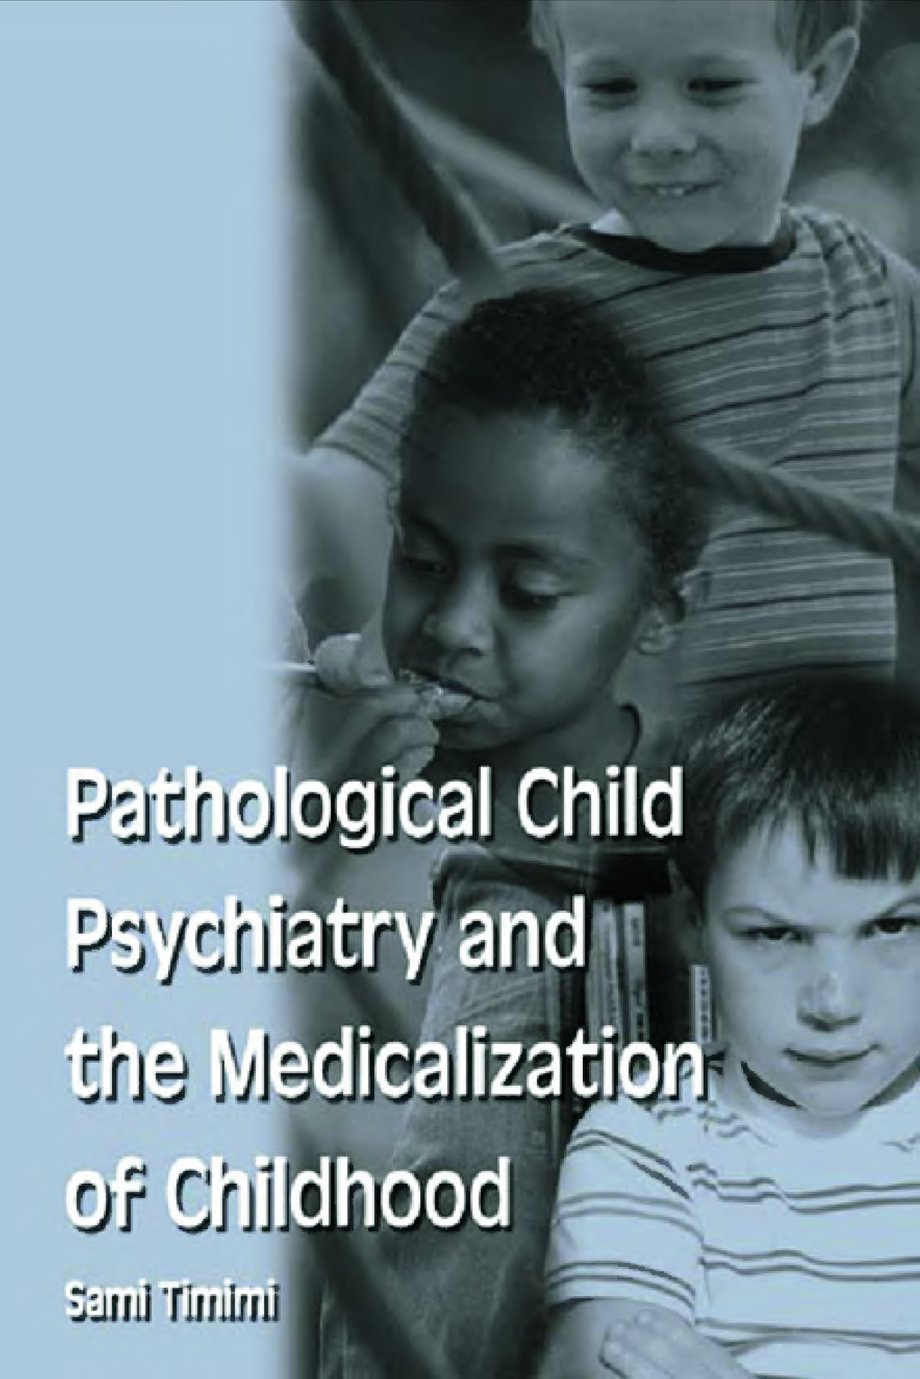 Timimi, Sami. Pathological Child Psychiatry and the Medicalization of Childhood